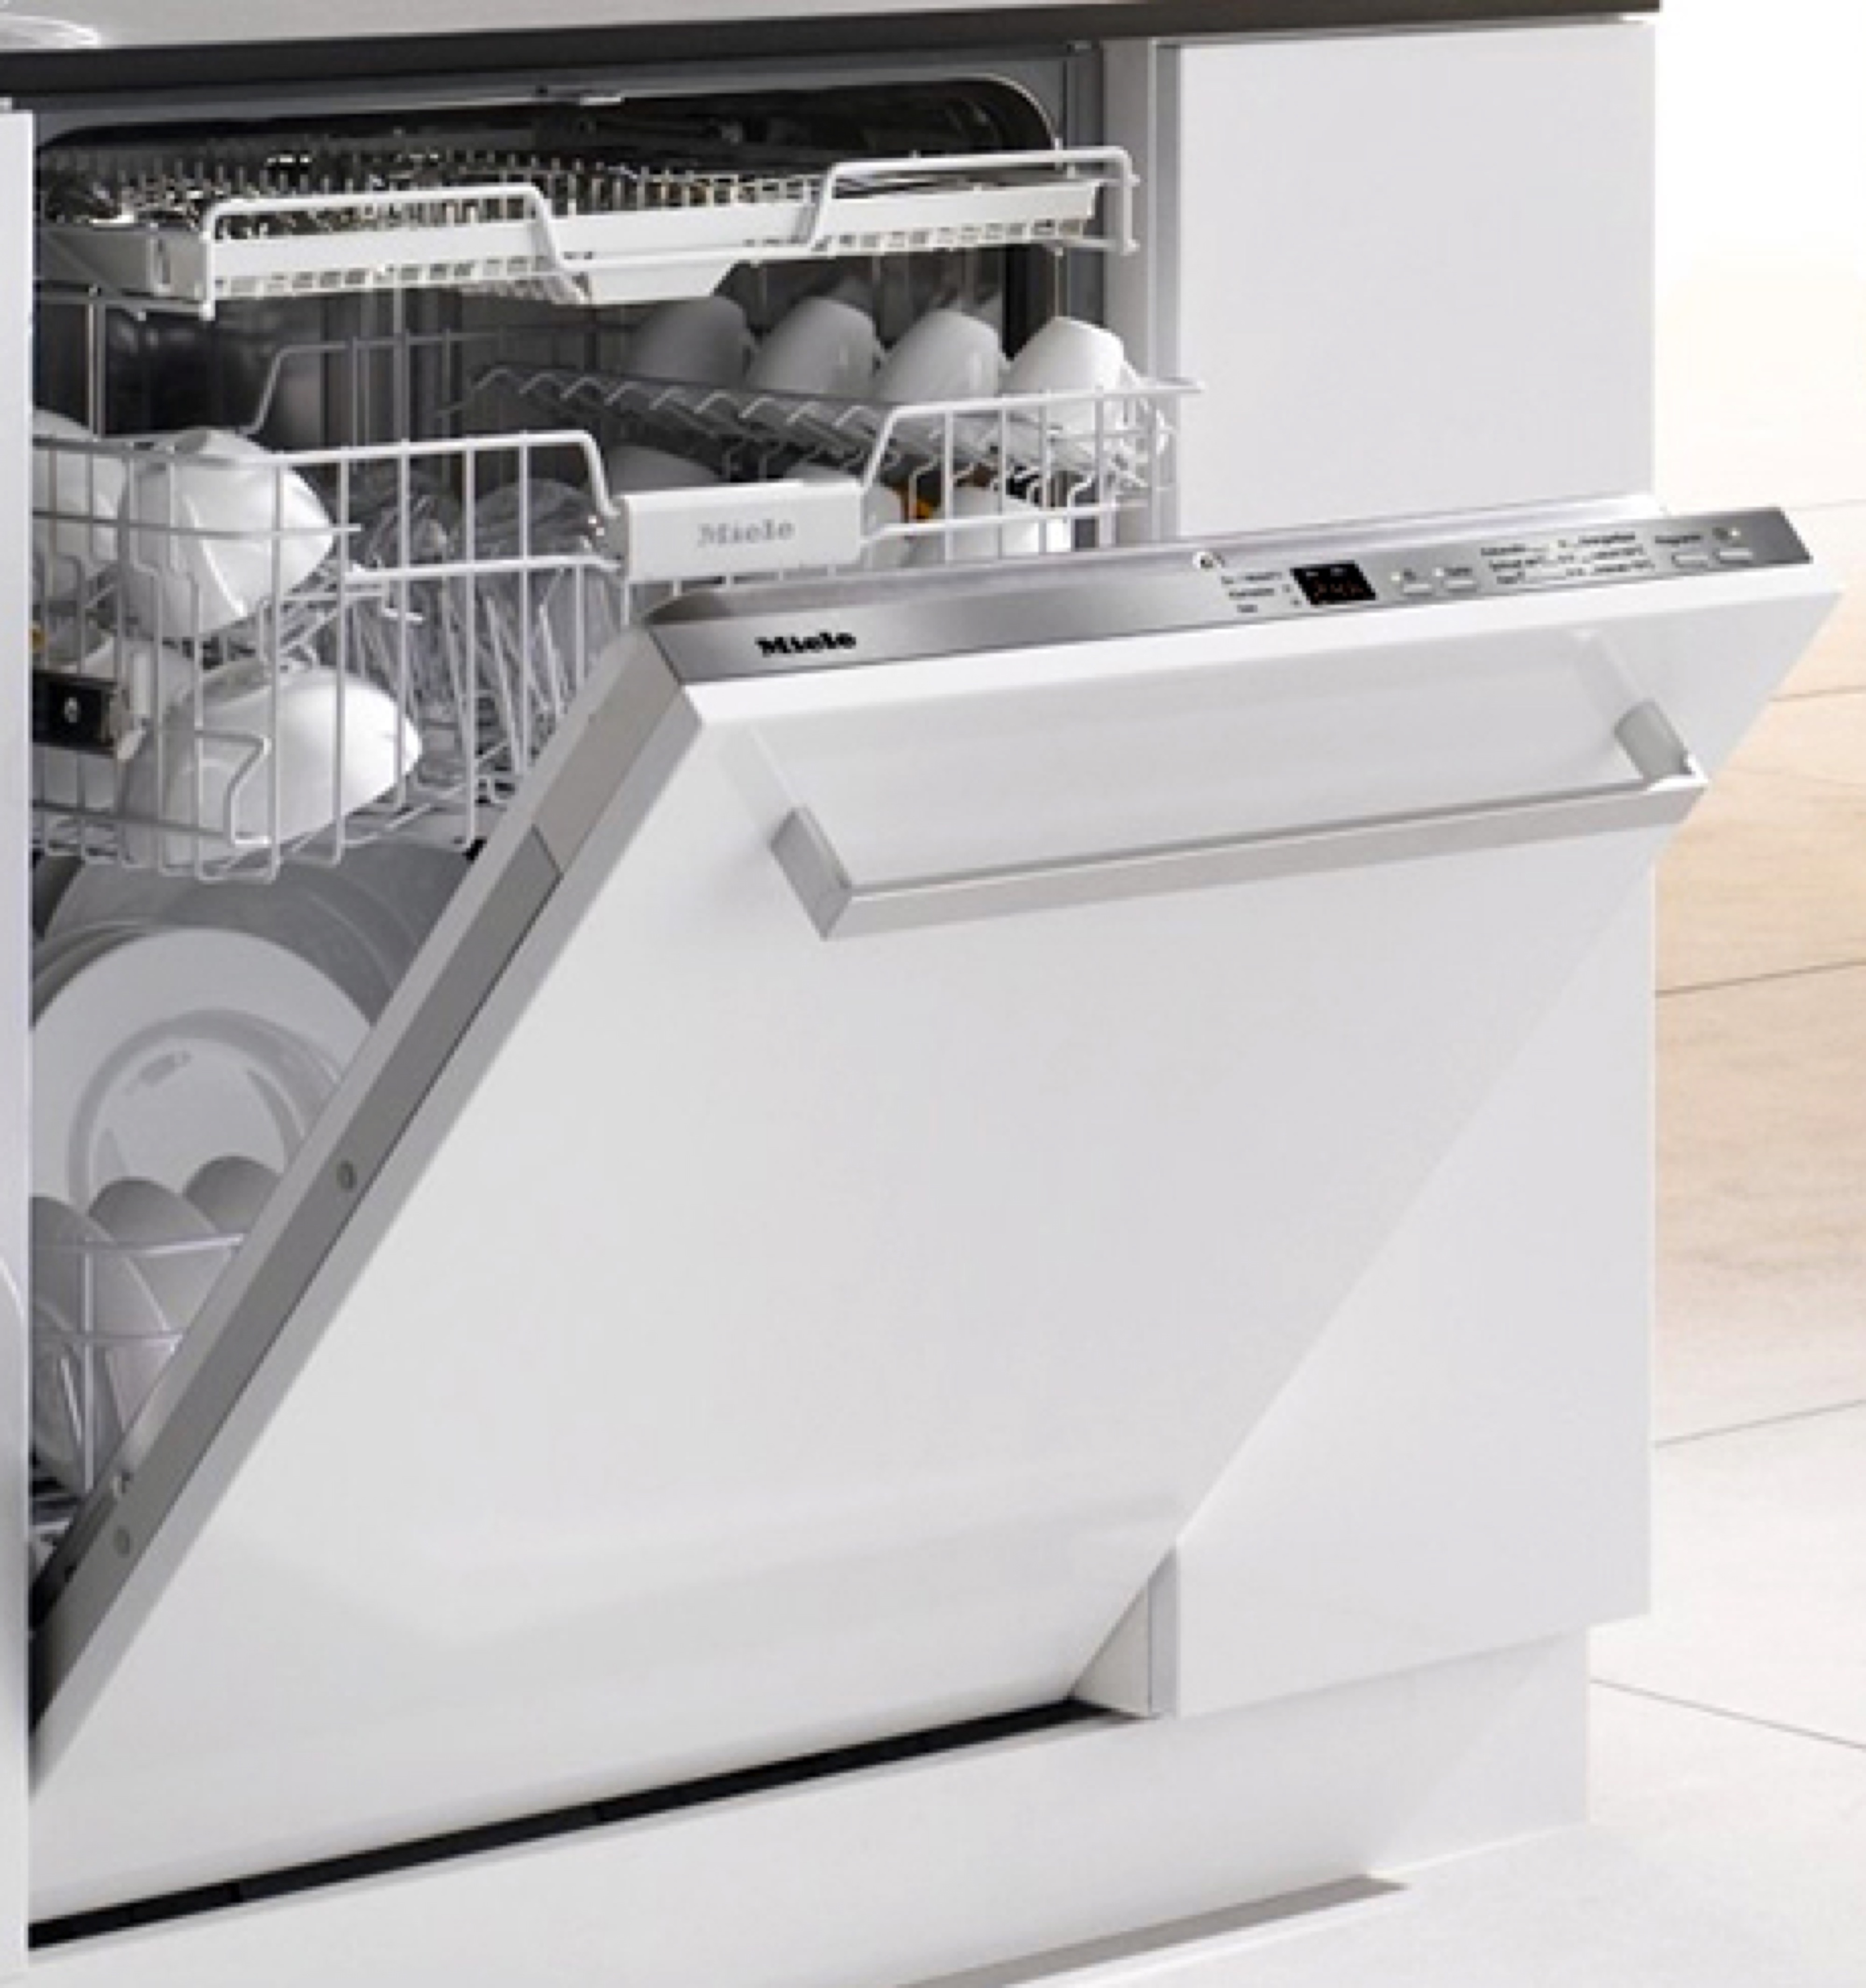 blog image - dish washer